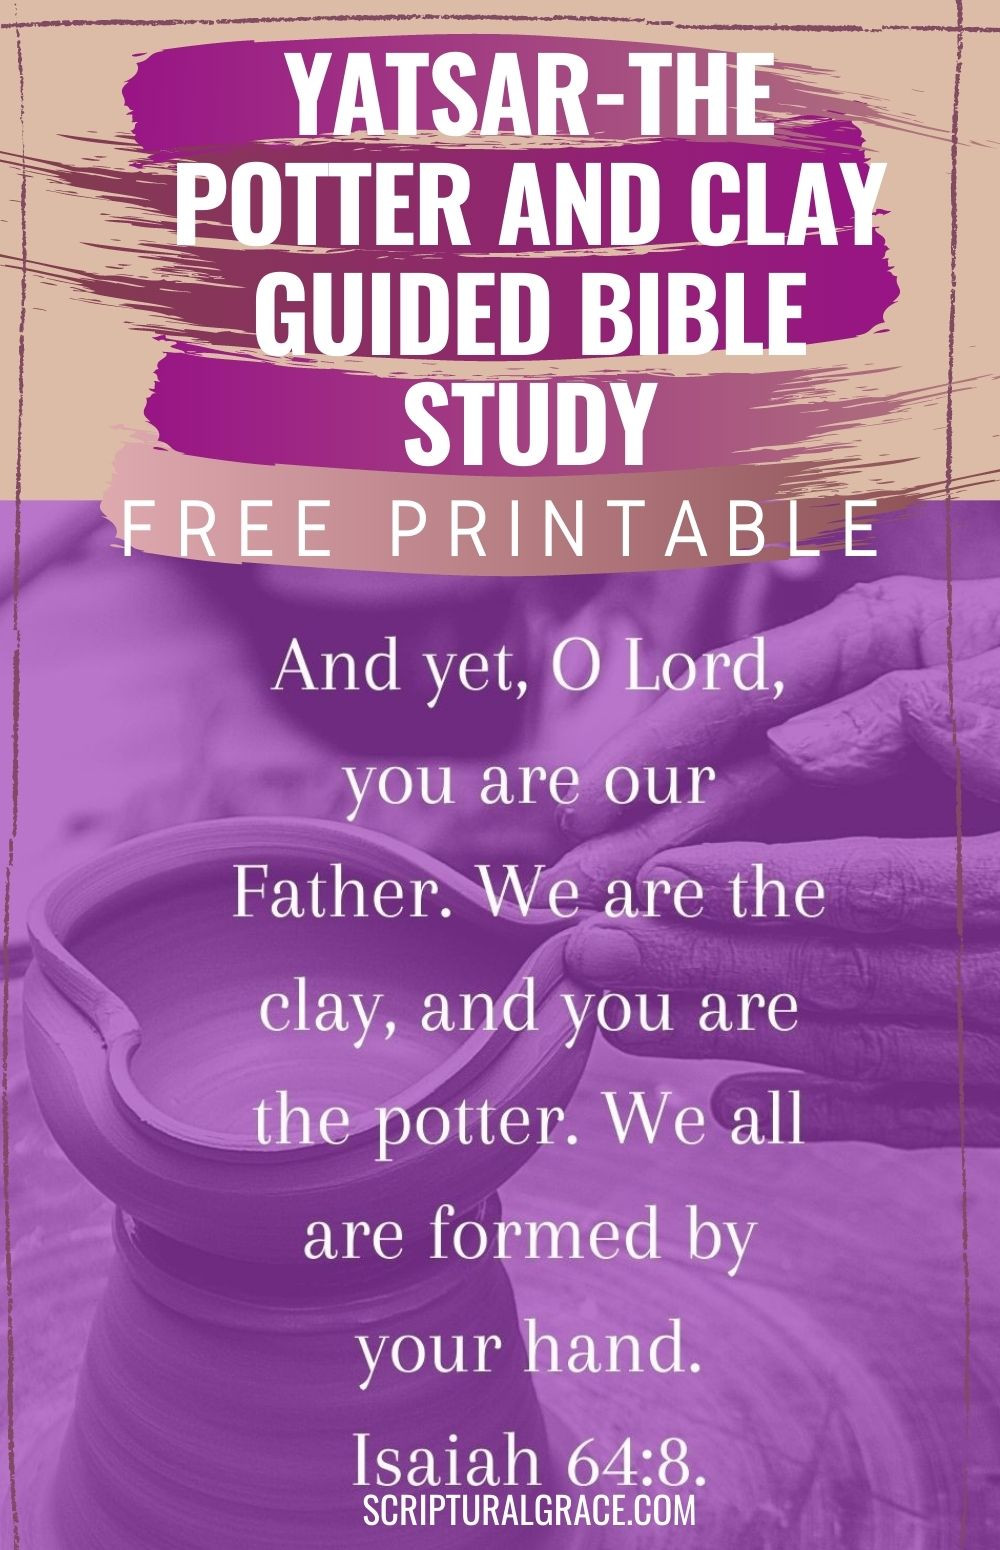 Yatsar the potter and clay guided bible study free printable names of God.